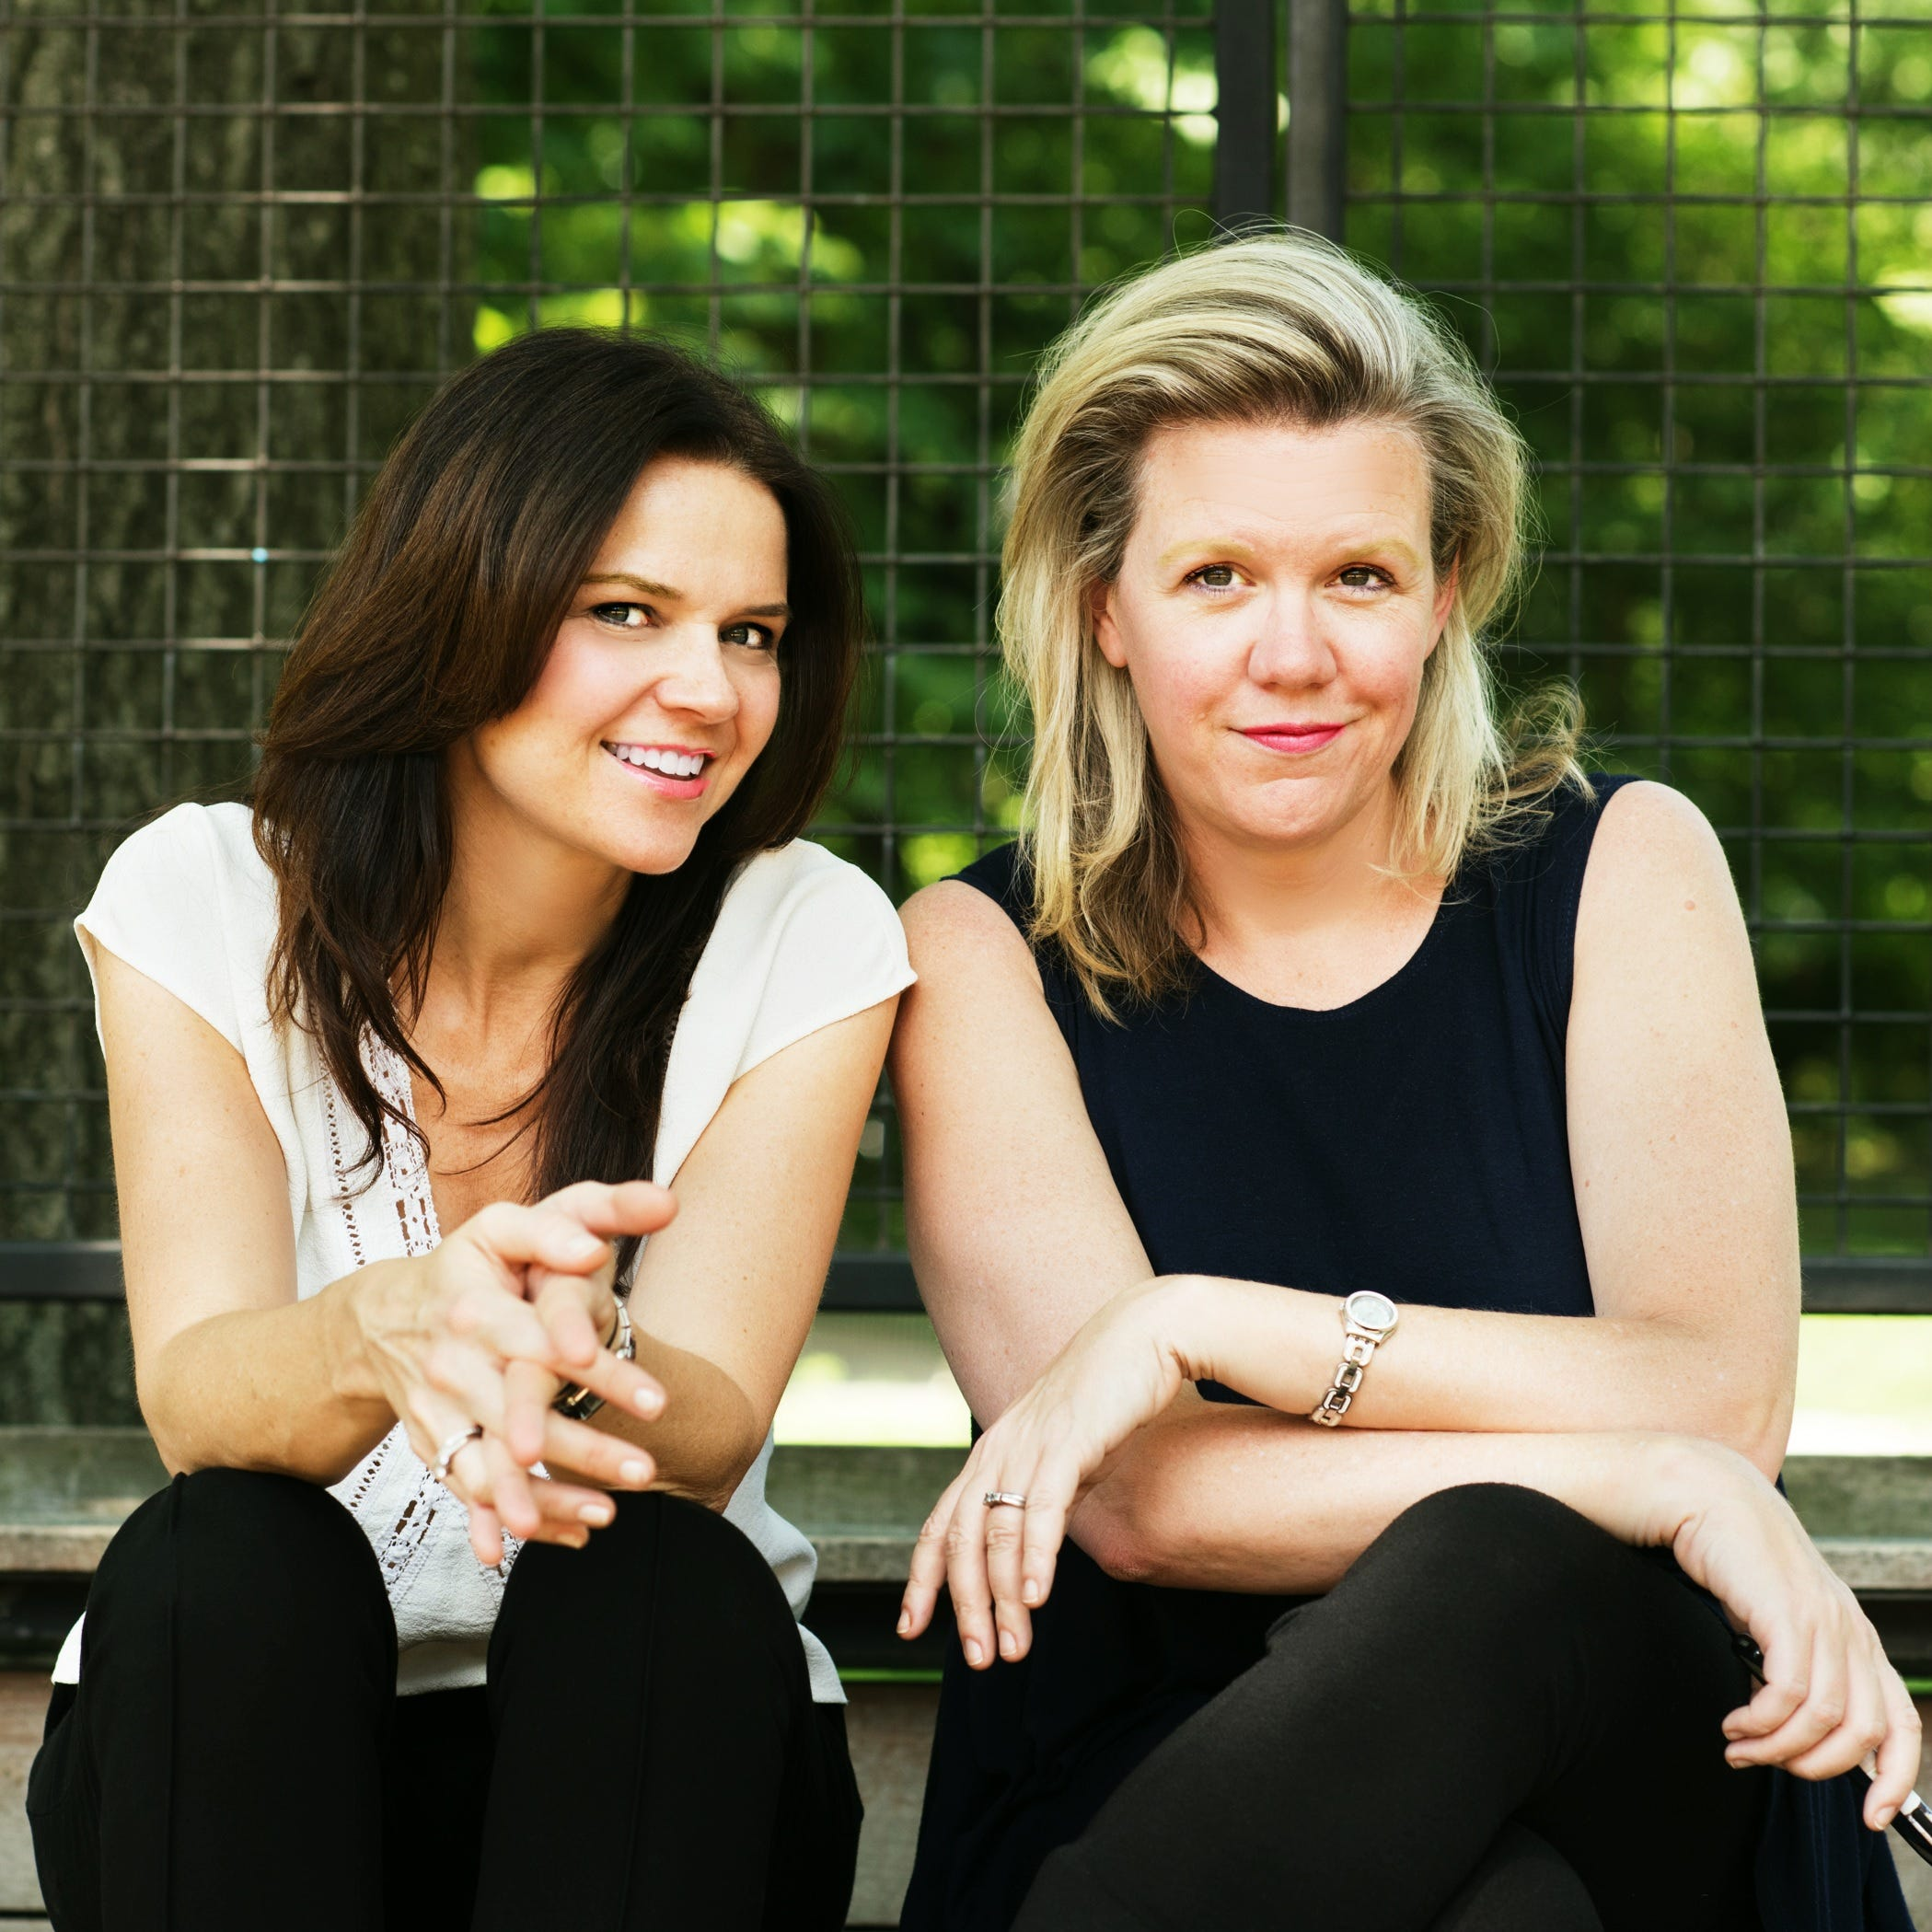 'What Fresh Hell'? Popular mom podcasters returning to Chappaqua